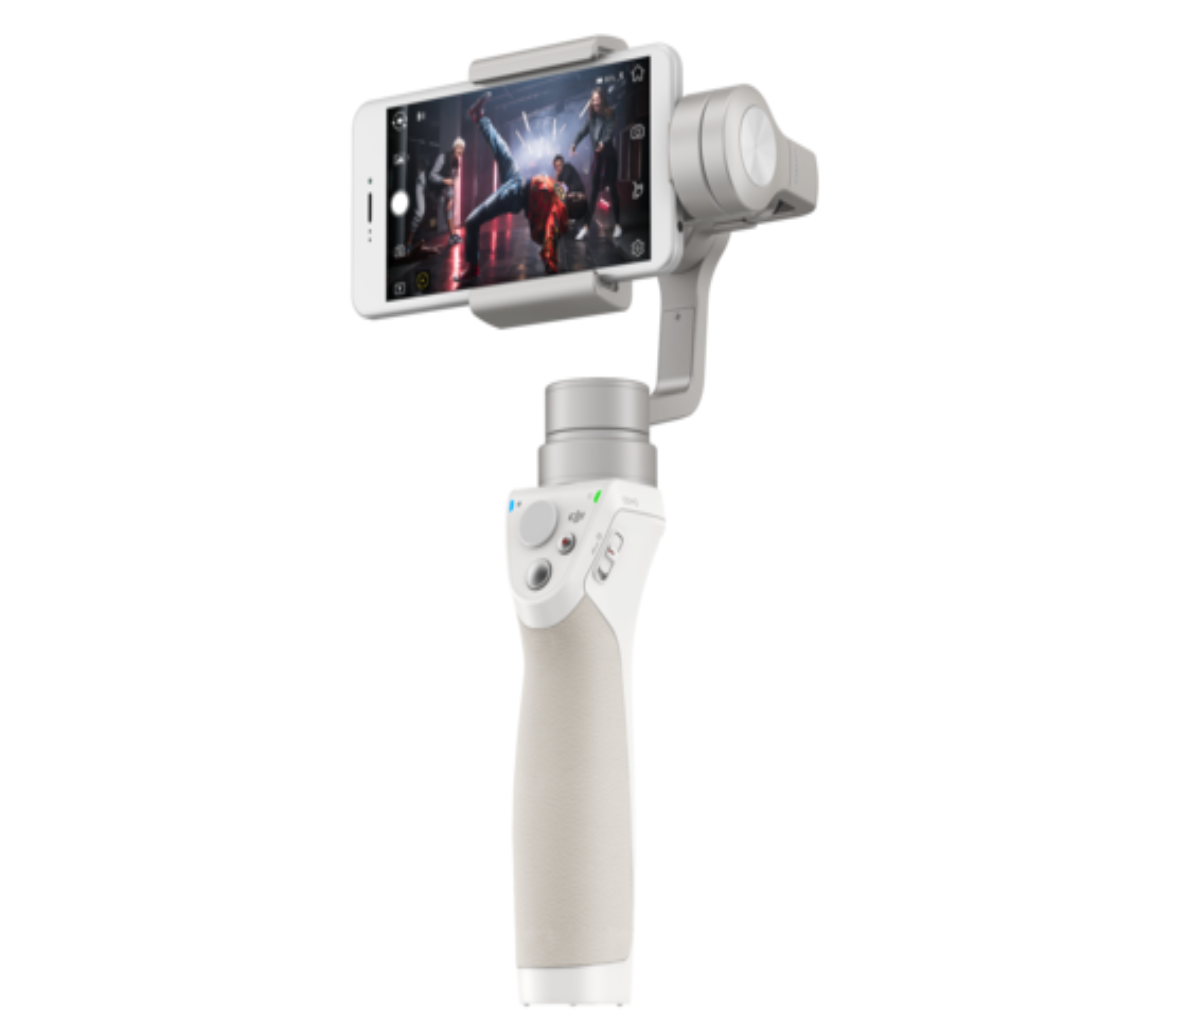 DJI introduces new Osmo accessories for iPhone